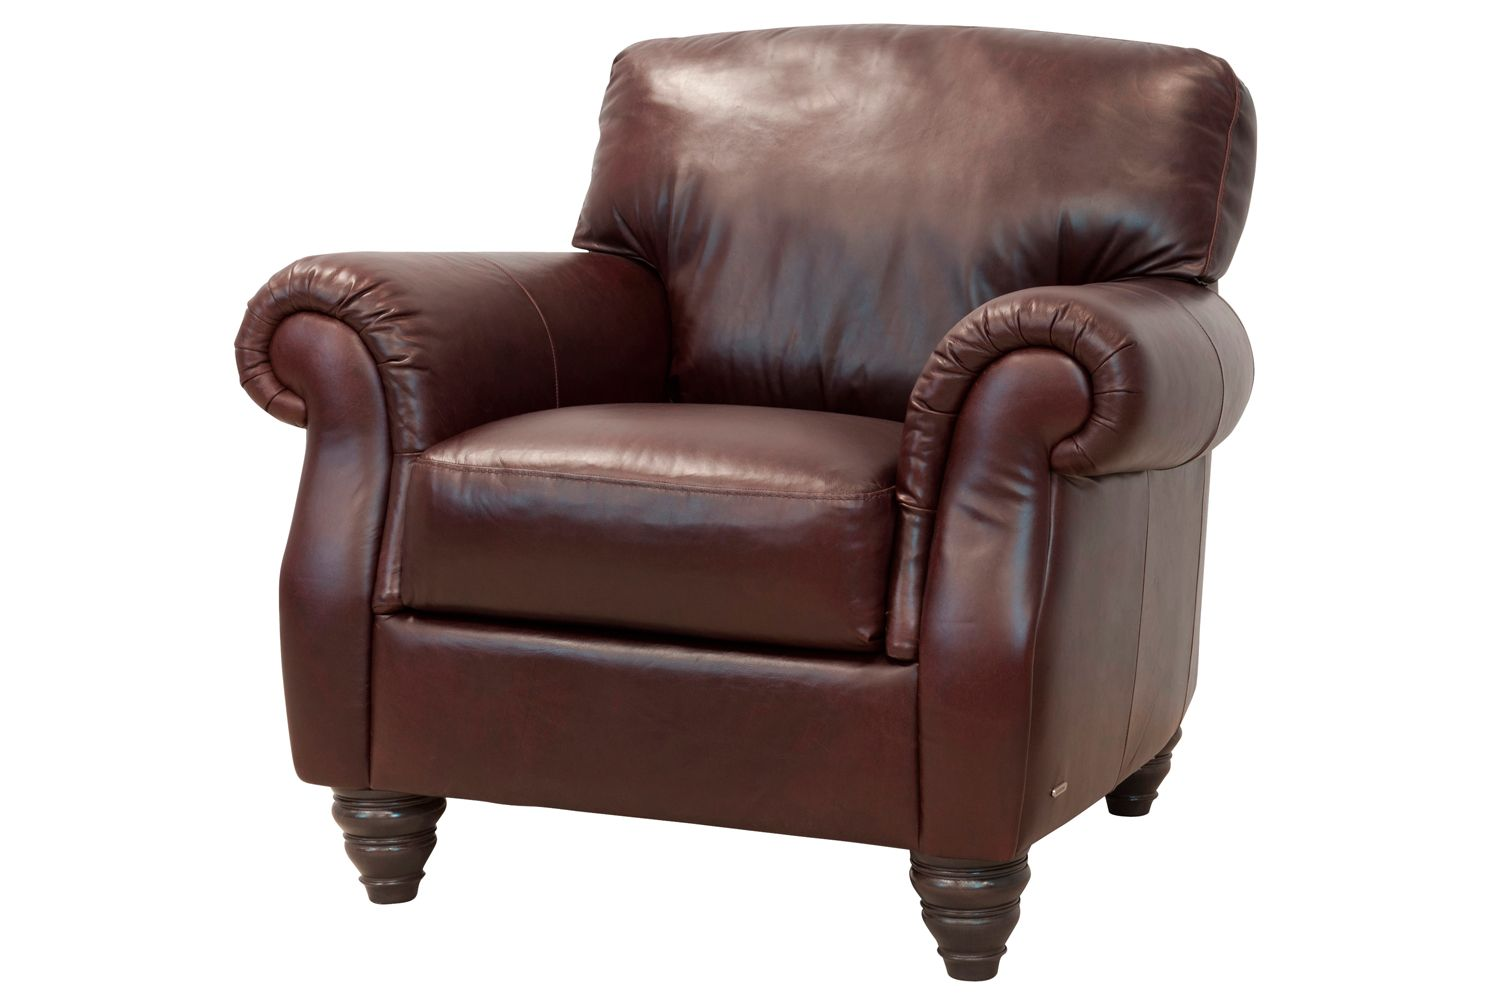 Salgari Leather Chair From Harvey Norman Ireland Leather Sofa